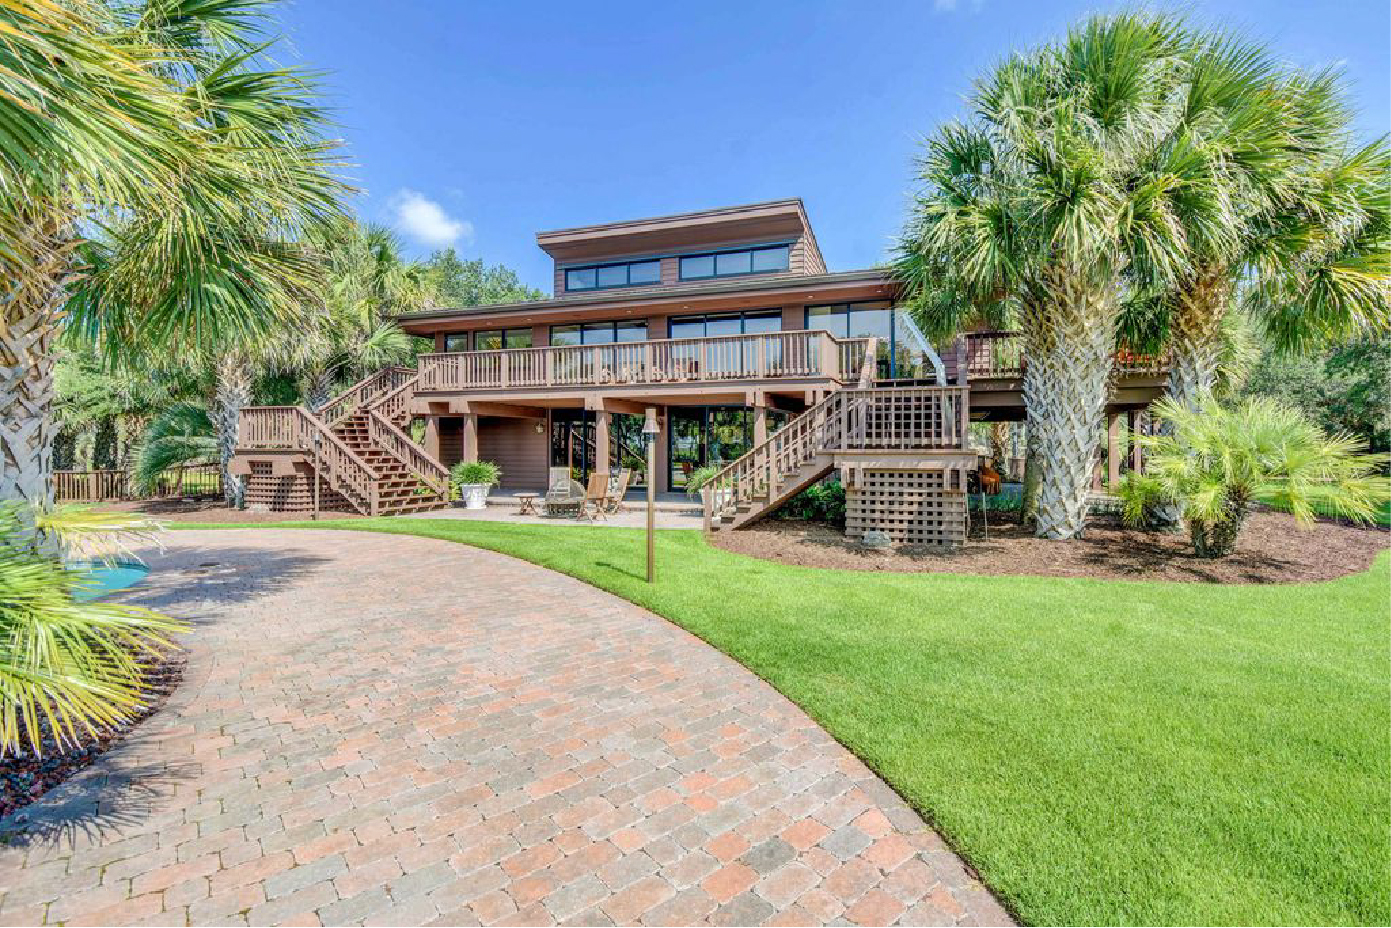 Oceanfront Homes For Sale In North Carolina, Wilmington